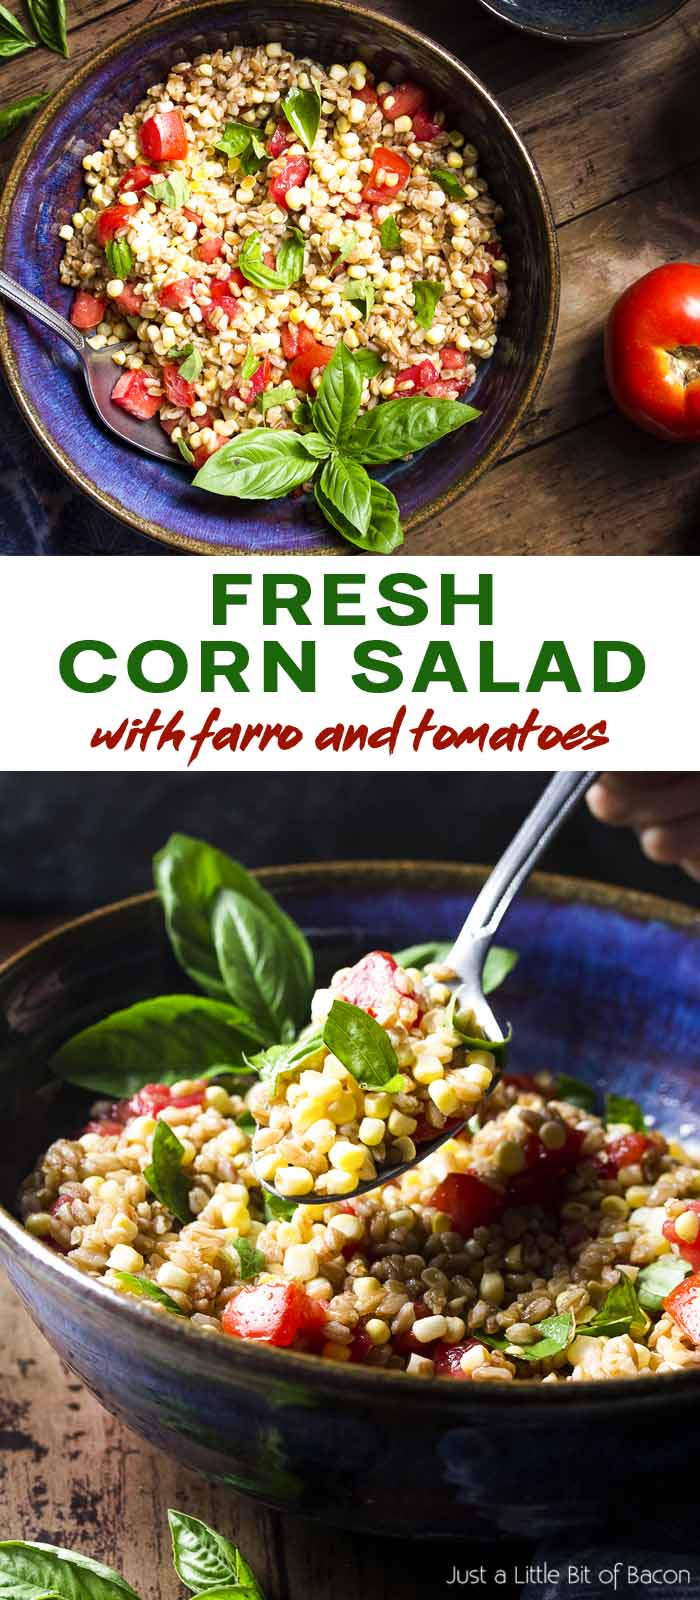 Two views of salad in a serving bowl with text overlay - Fresh Corn Salad.